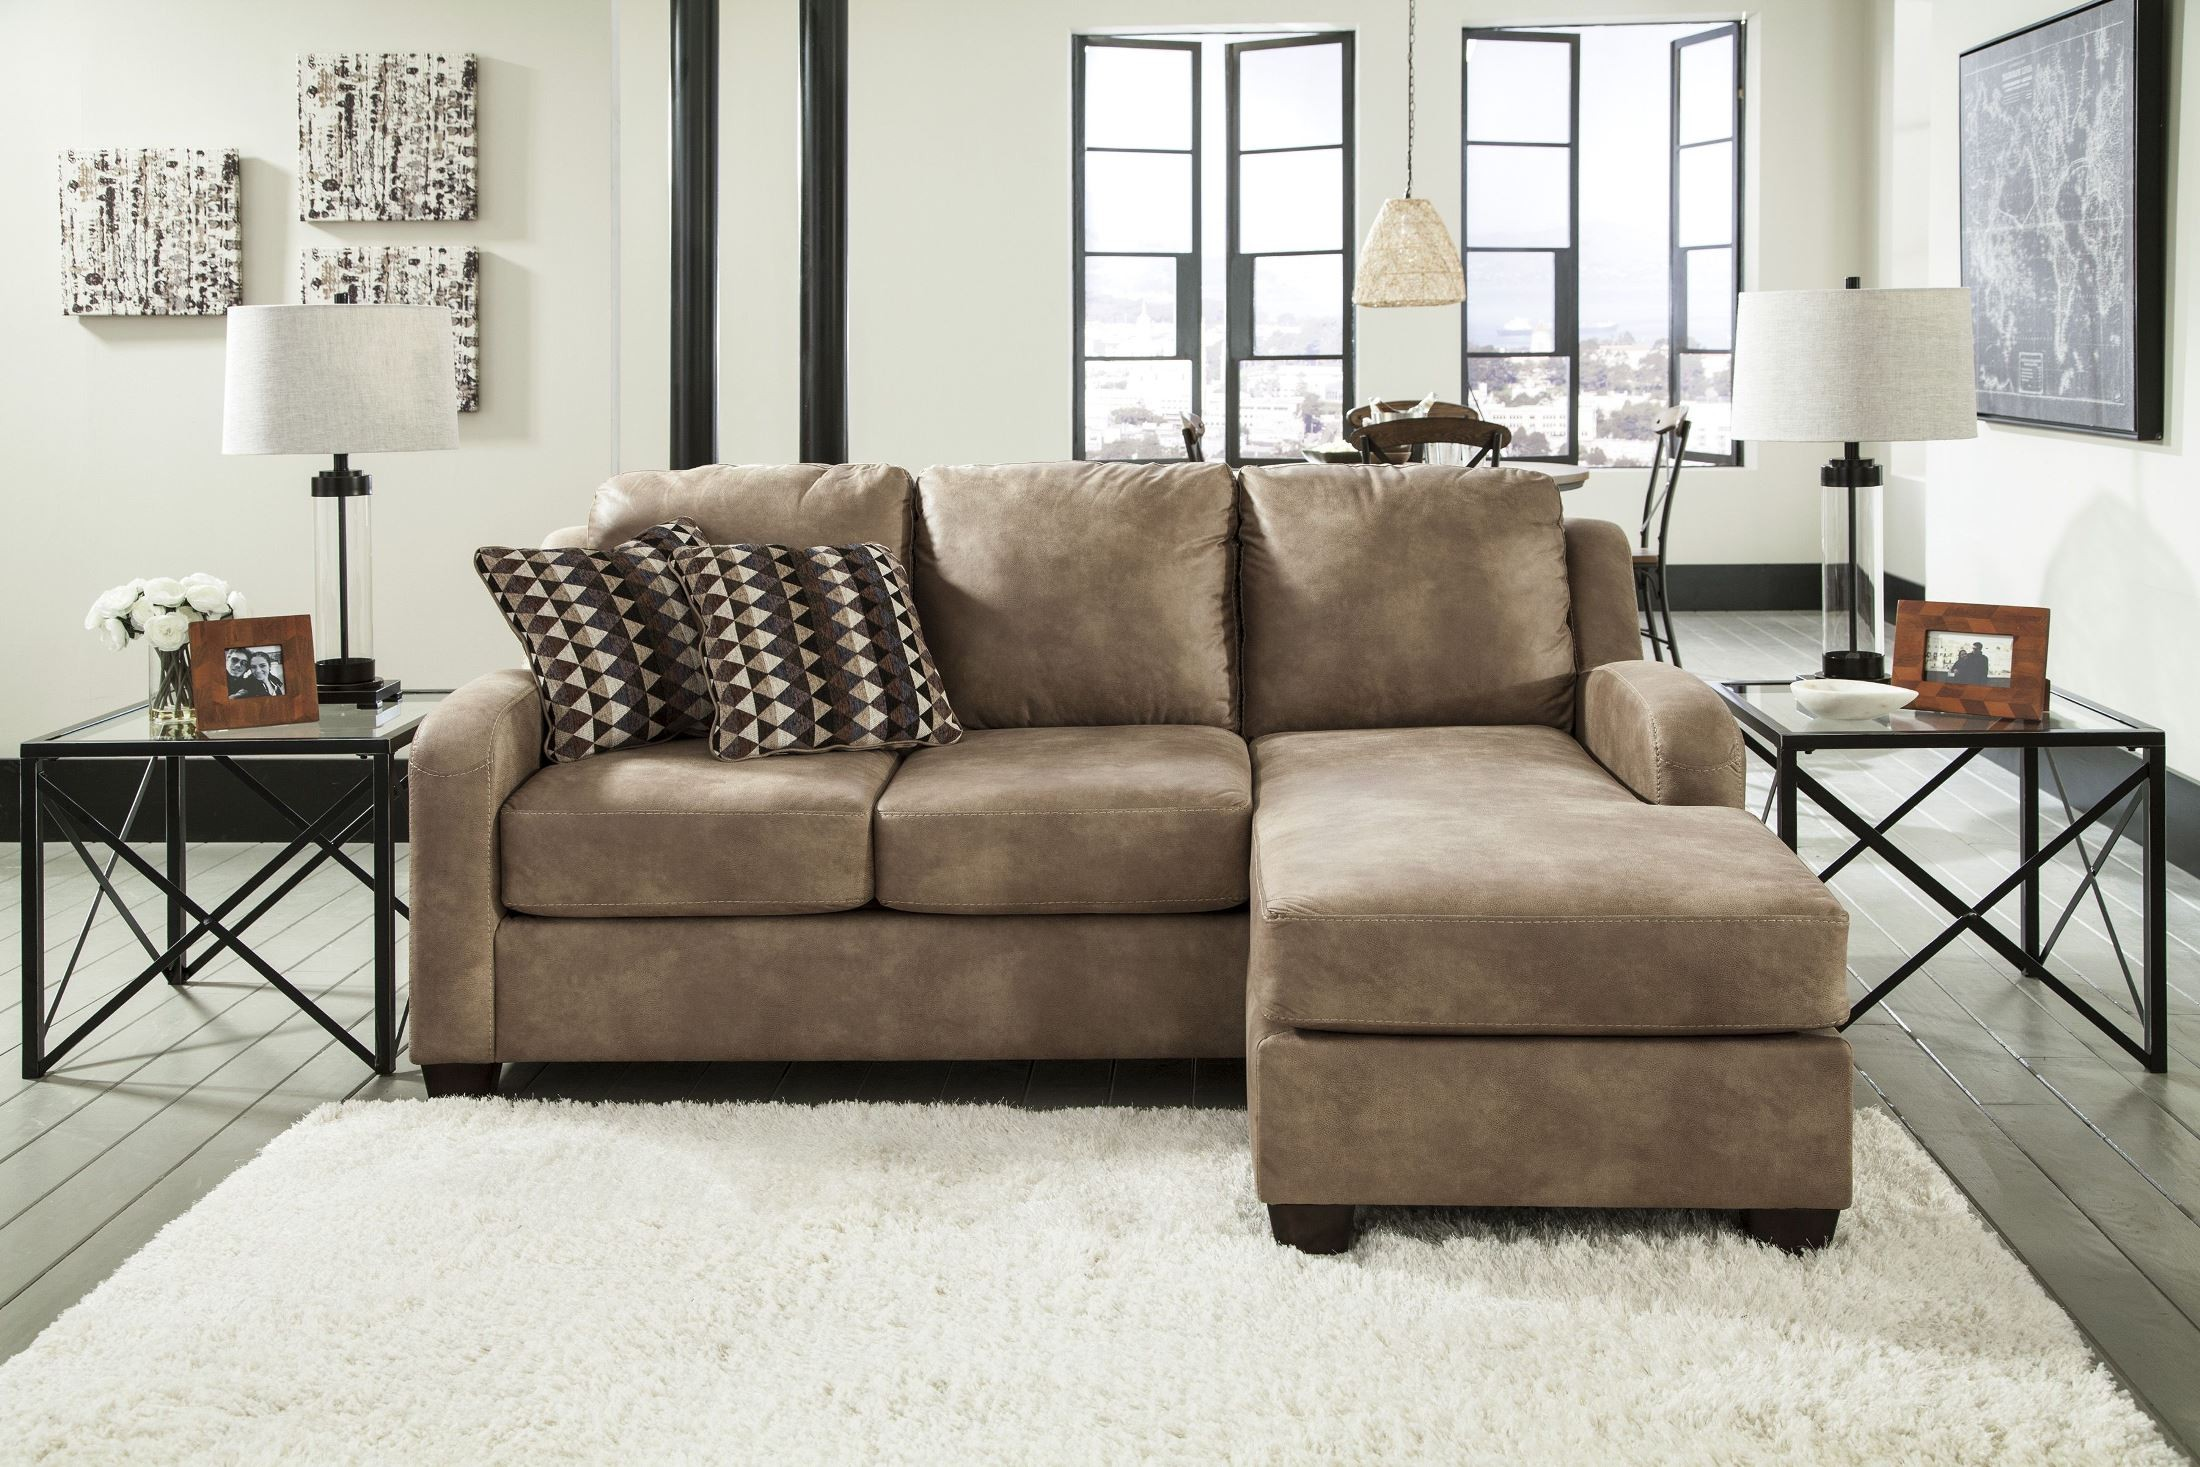 Alturo dune sofa chaise from ashley 6000318 coleman for Ashley furniture chaise